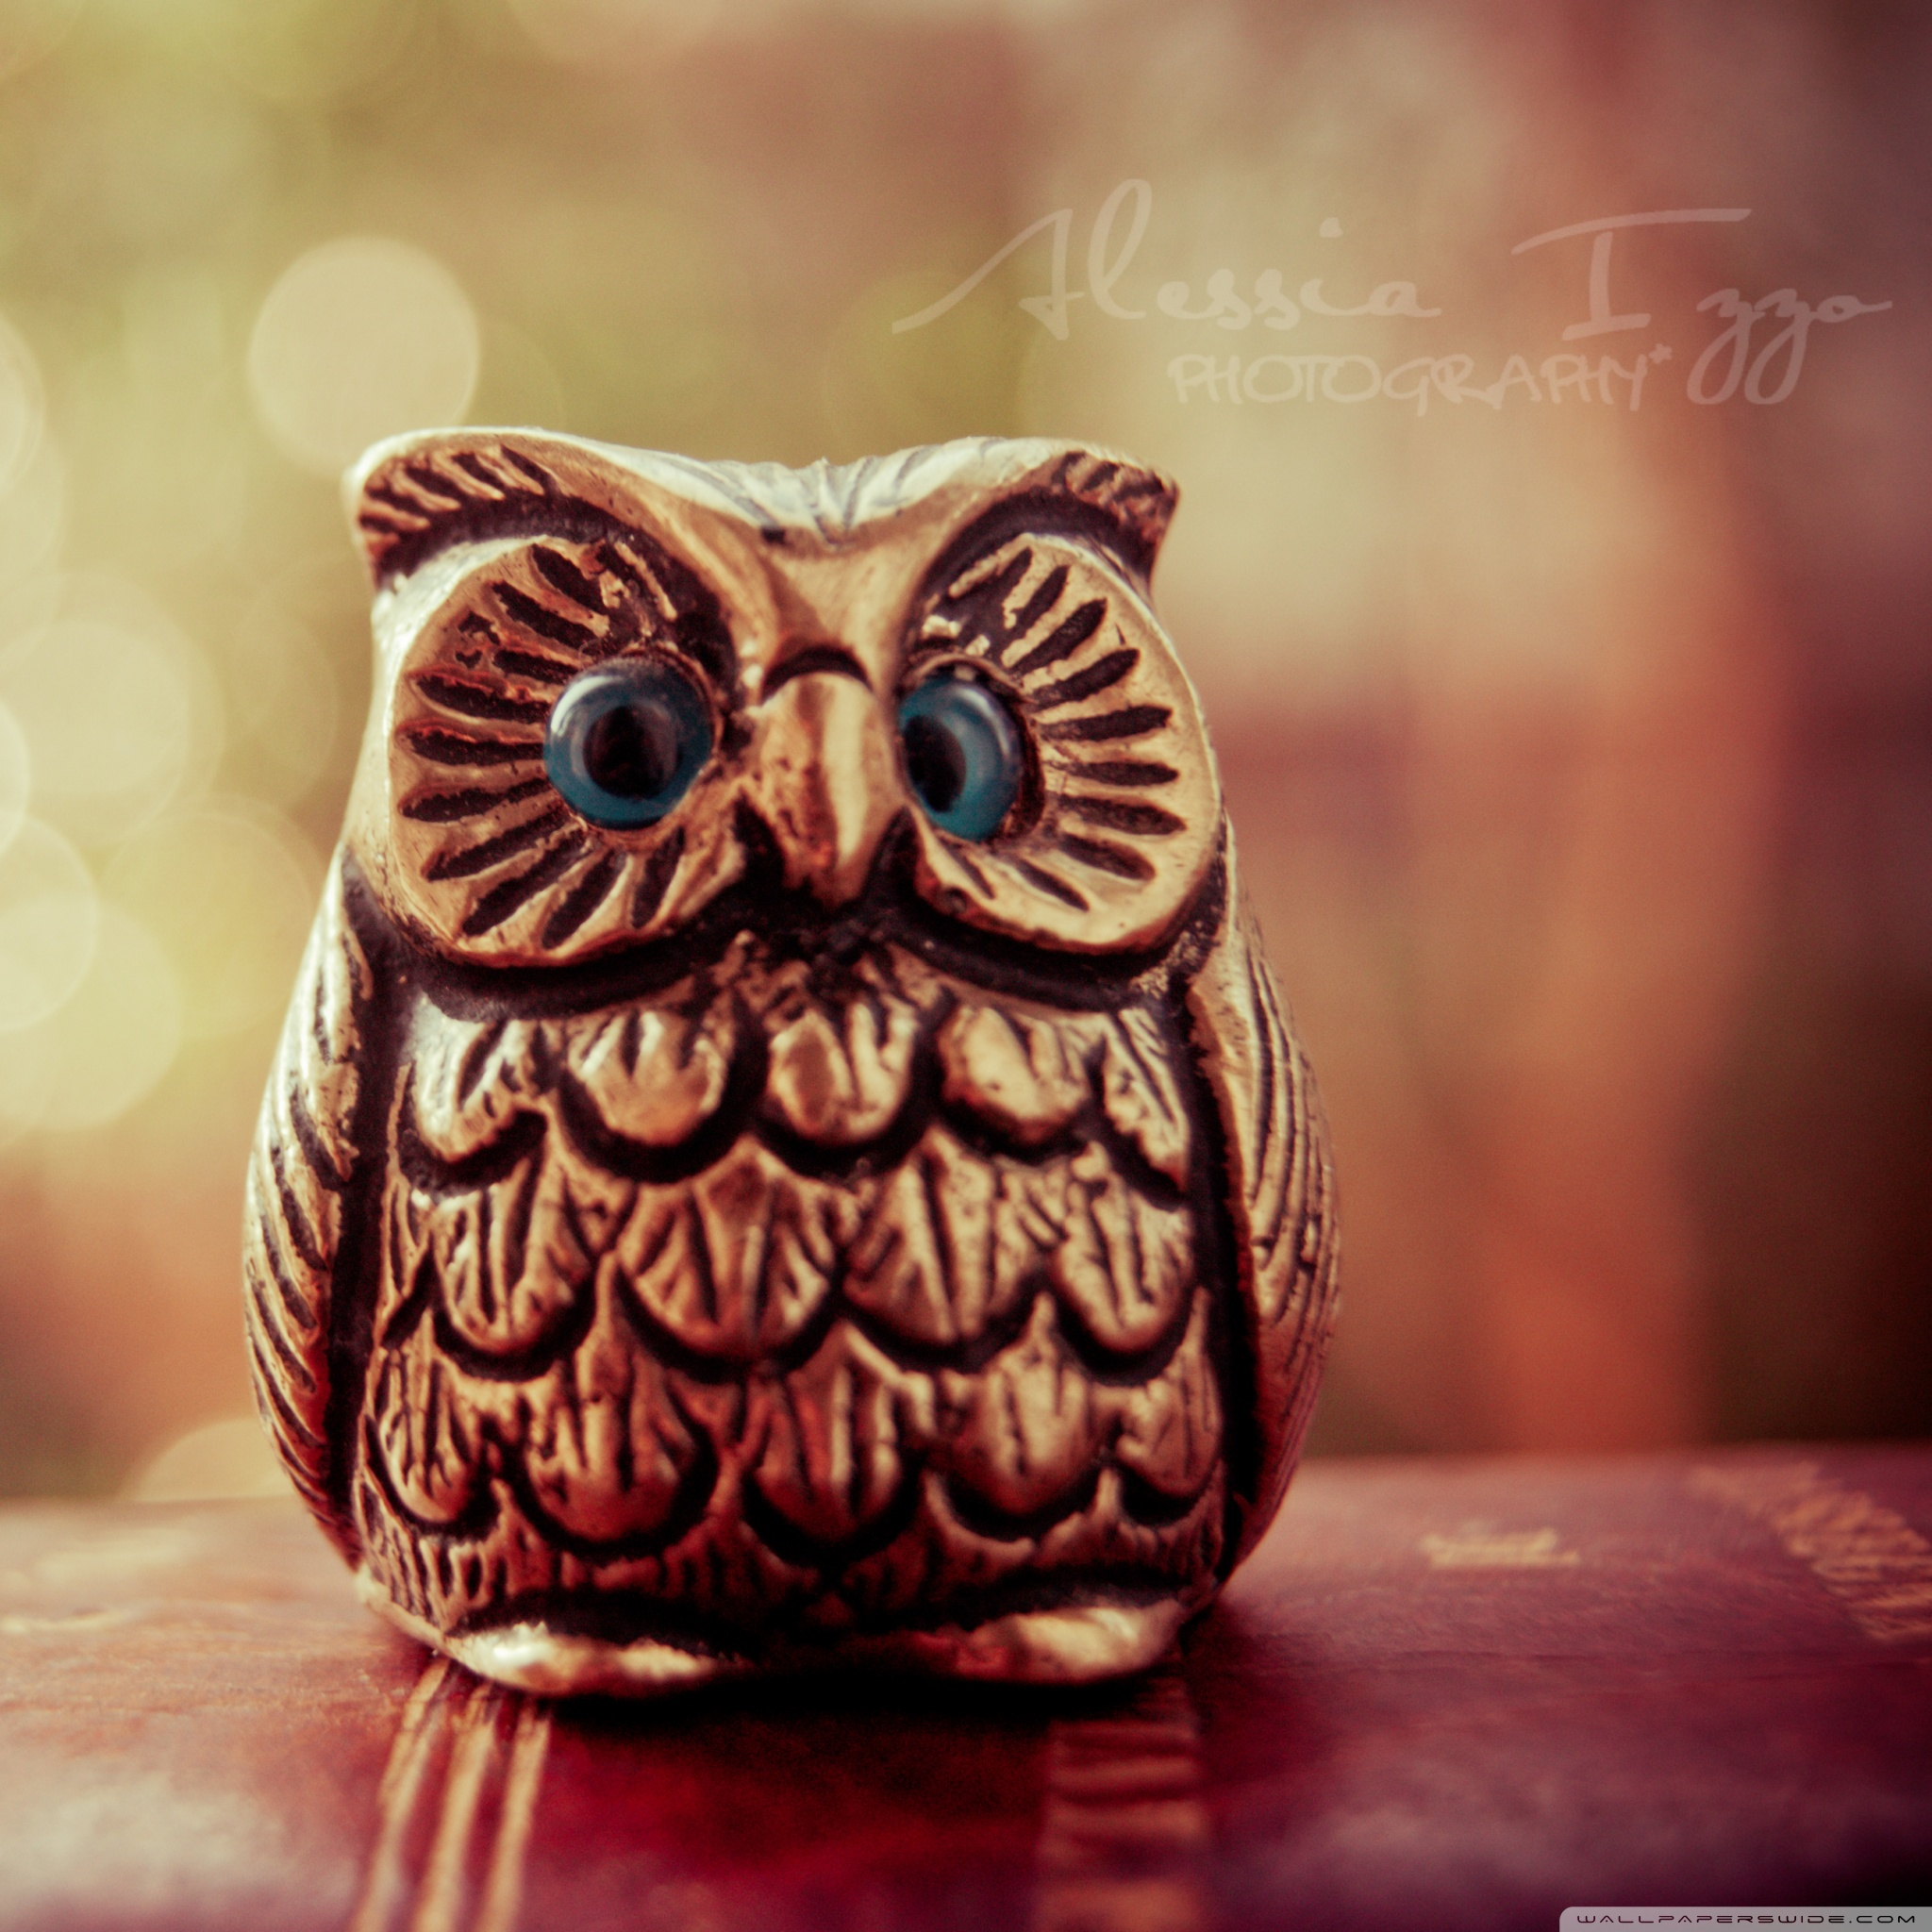 Ipad Cute Owl Wallpaper Hd For Tablet 949683 Hd